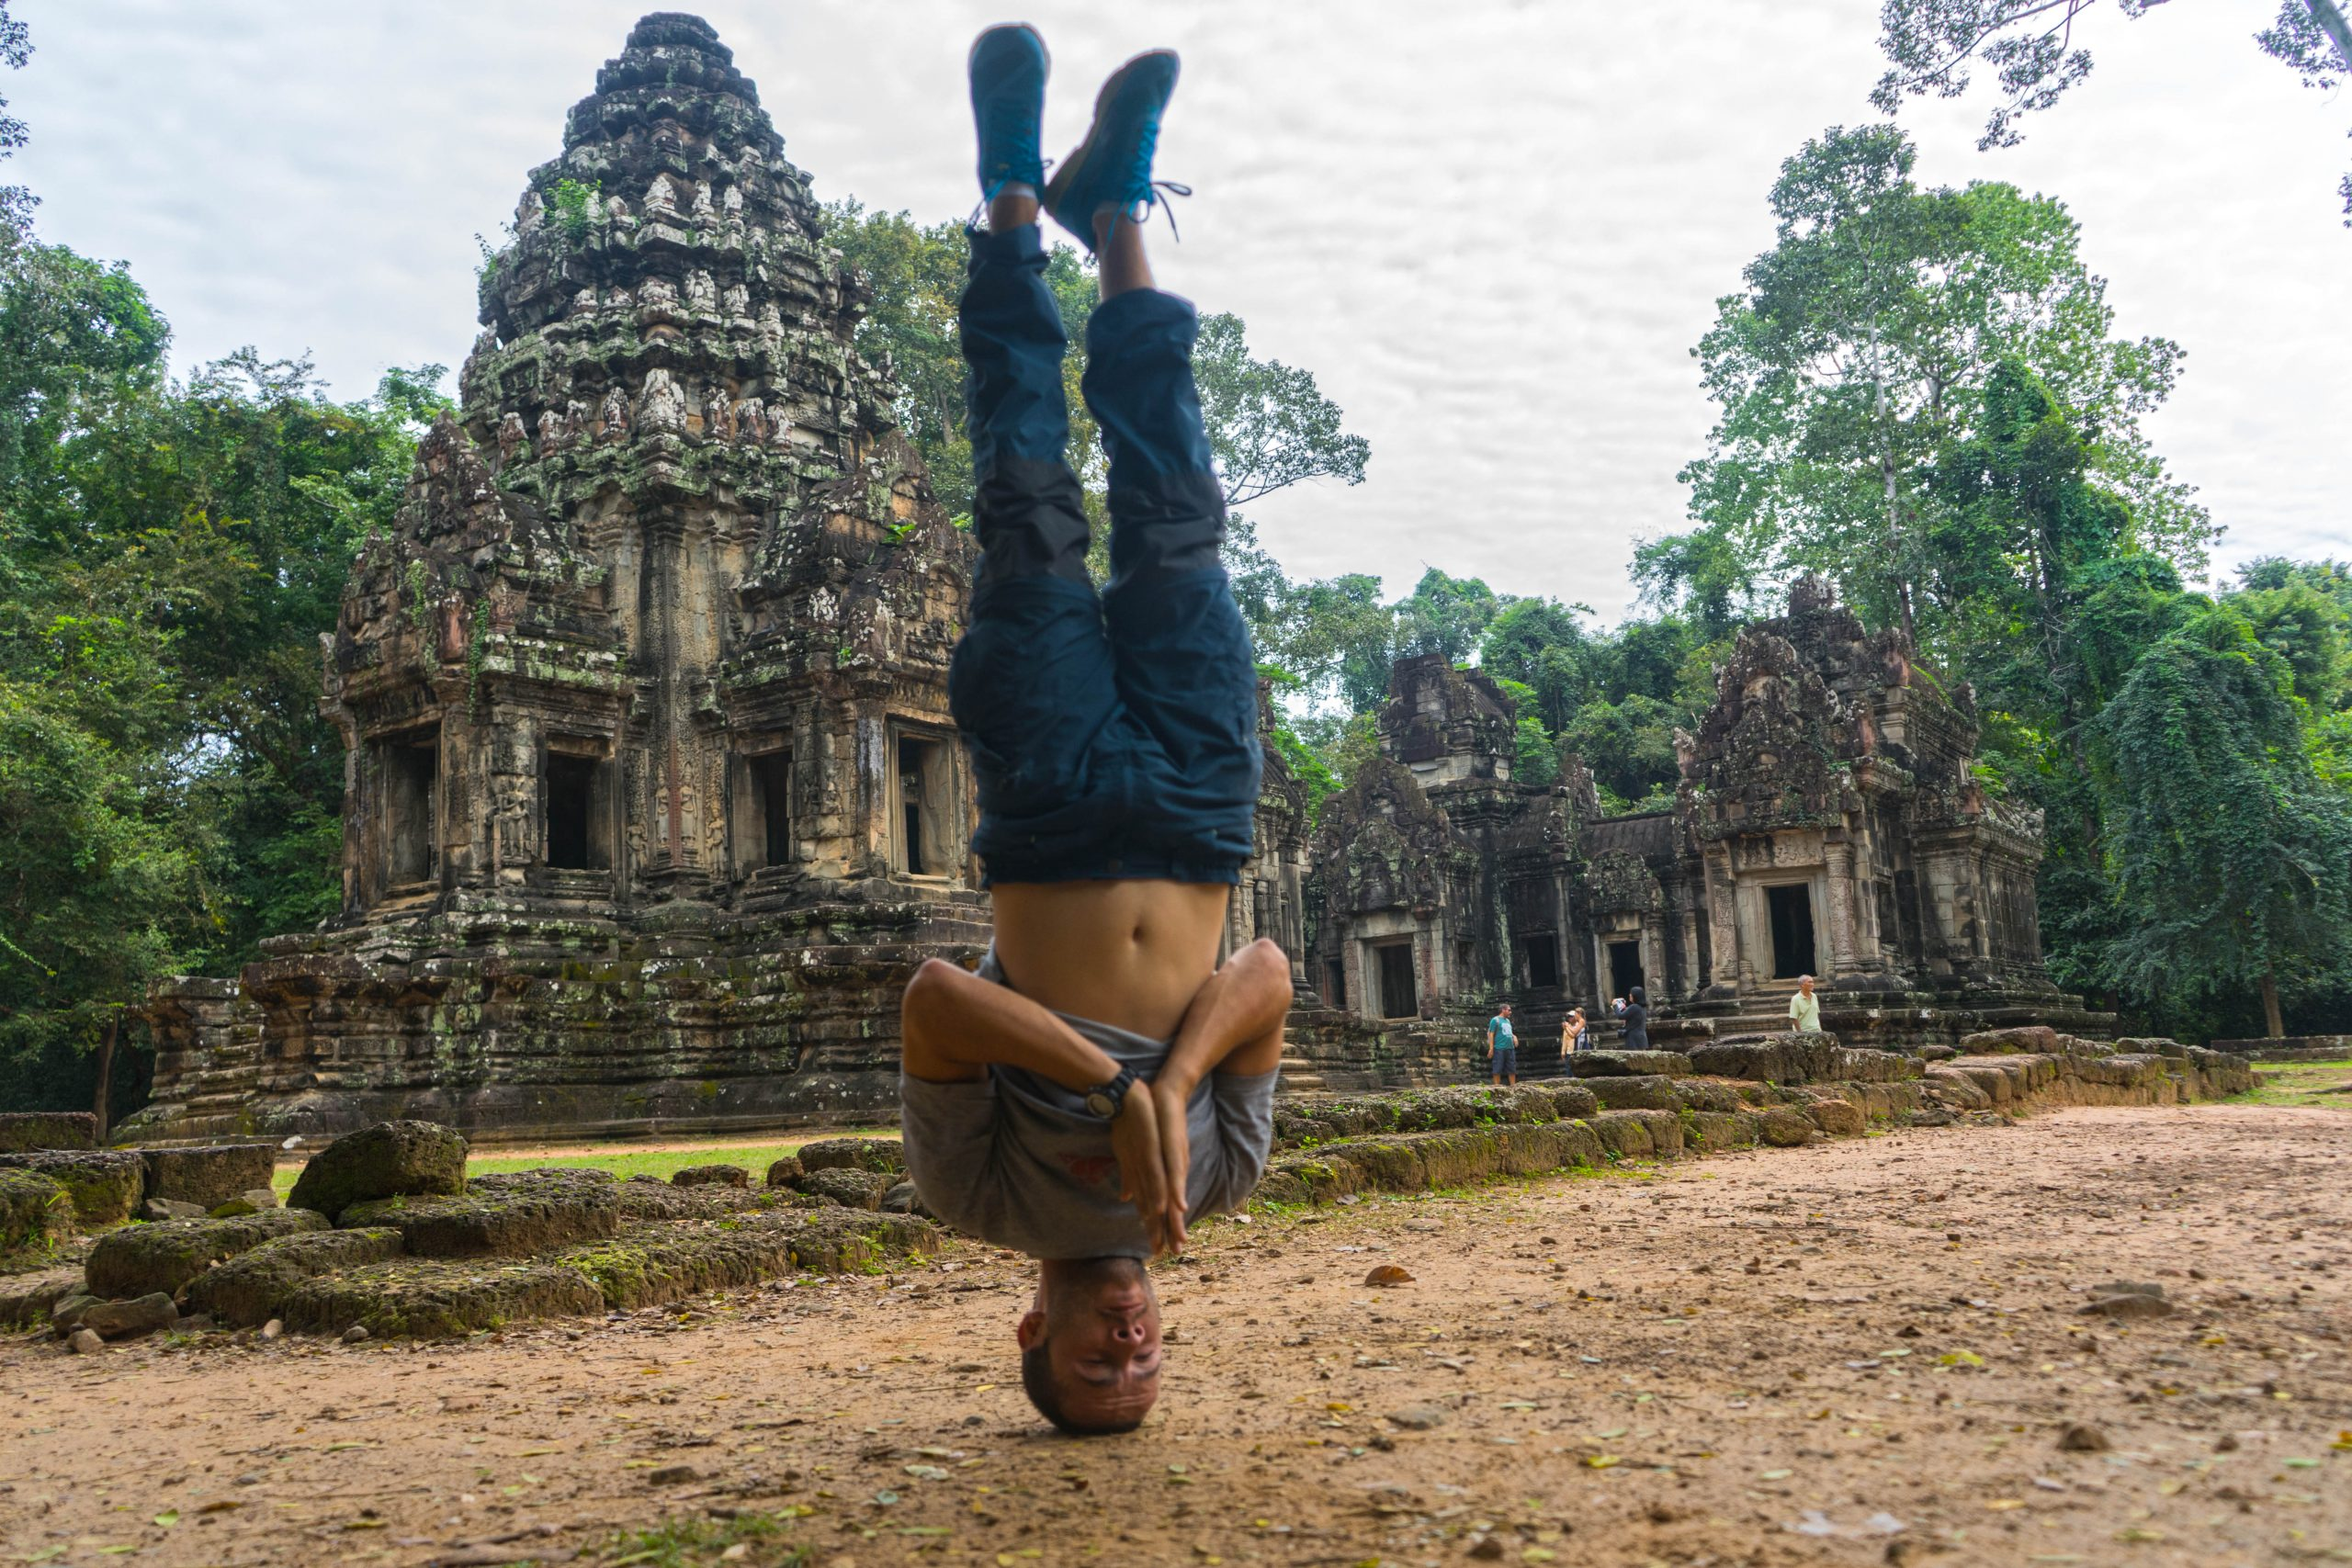 Airbnb – Free English School for Kids in One. The ancient Angkor Wat and how to be safe in Phnom Penh